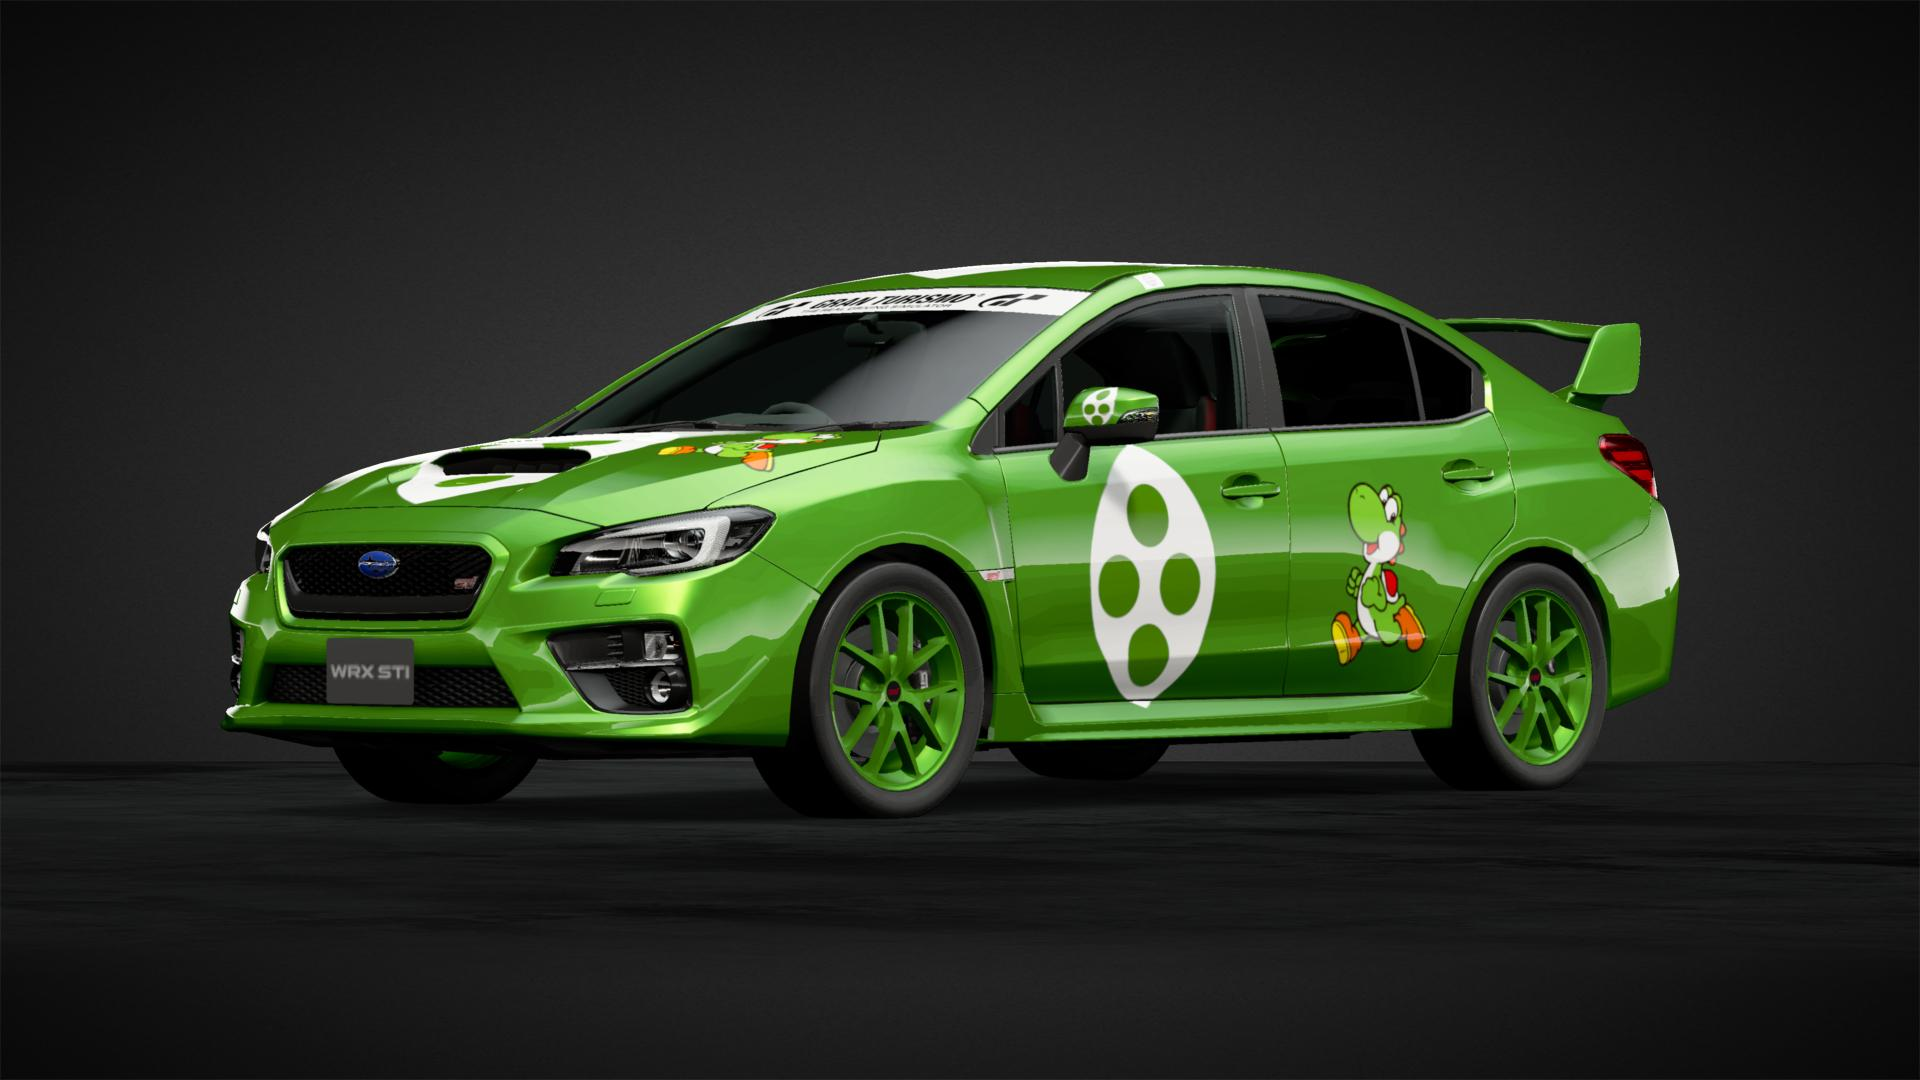 WRX STI Yoshi Edition Car Livery By Scottr 93